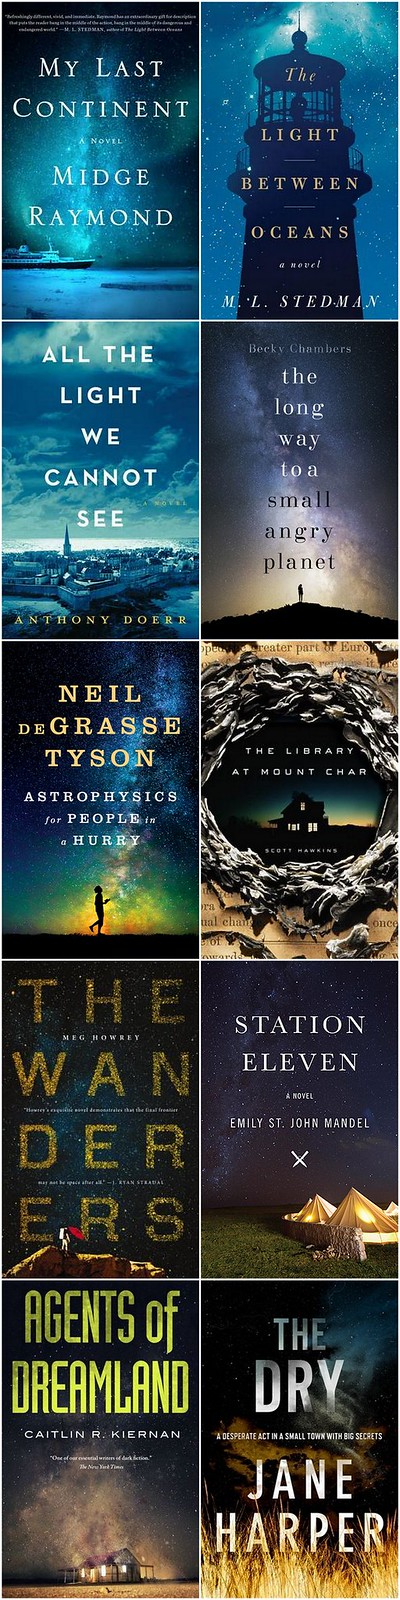 night sky book covers